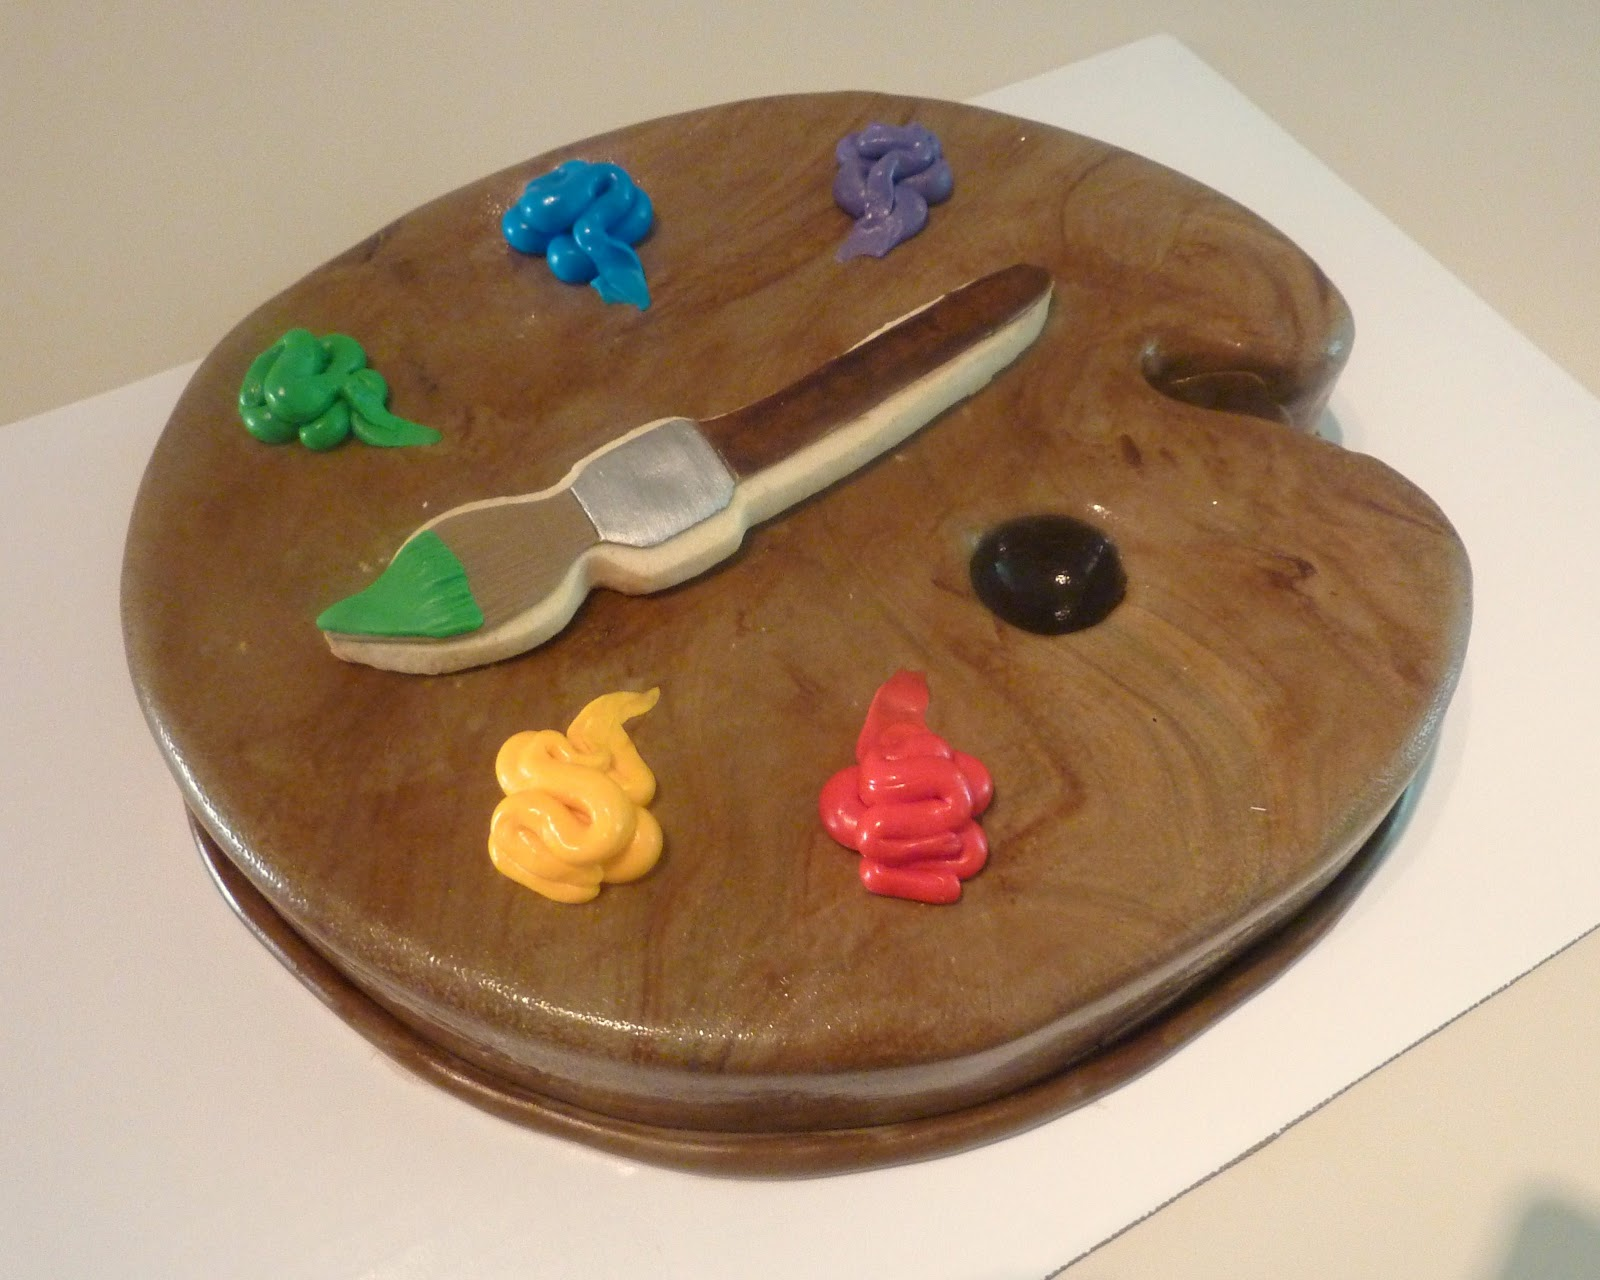 Creative Crumbs Nashville: Edible Art!